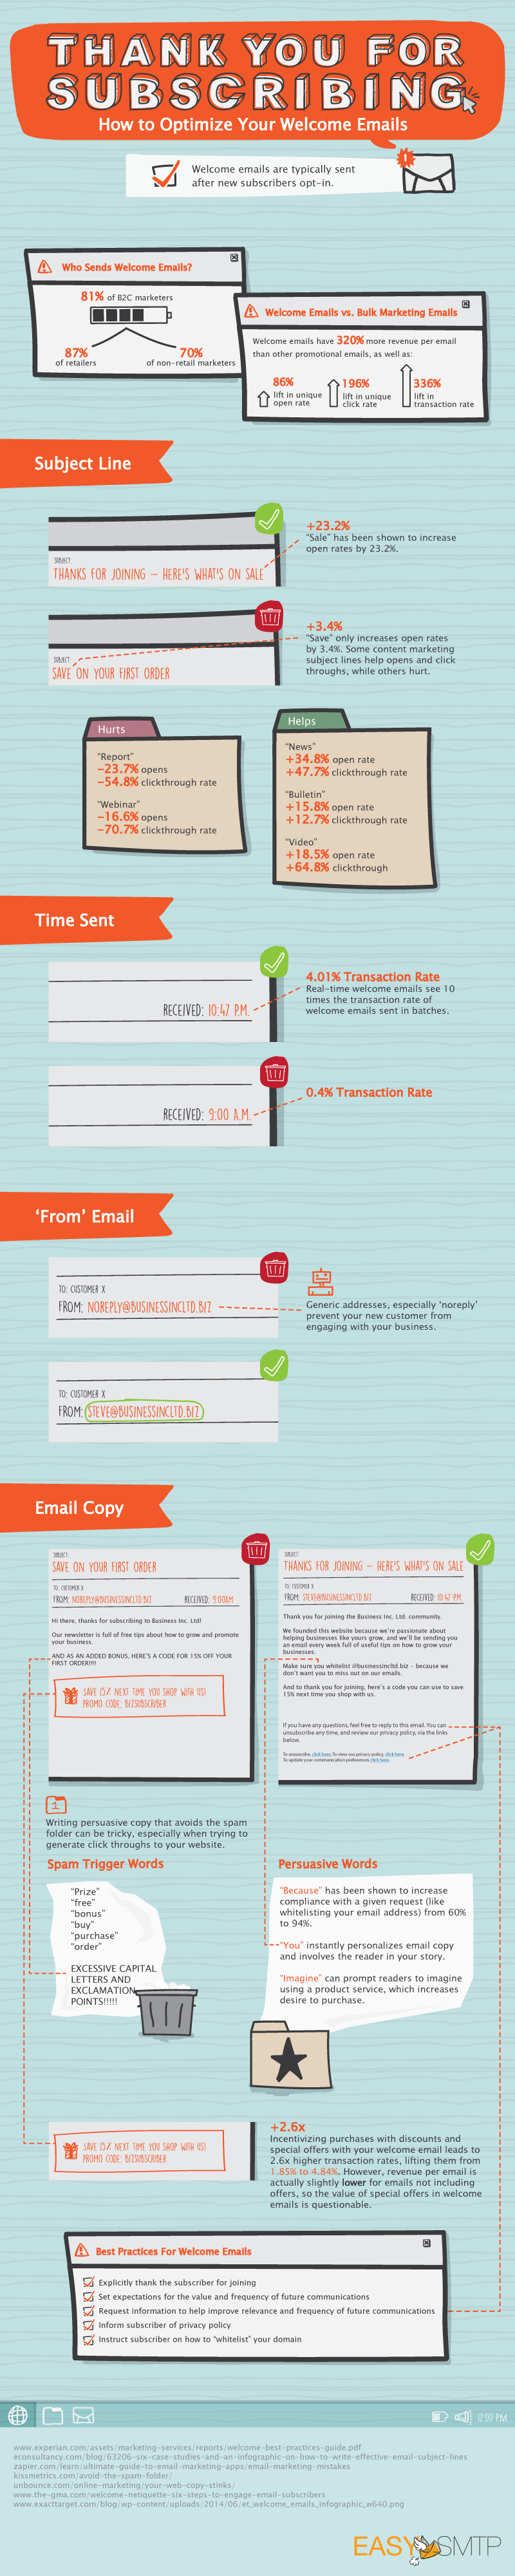 Infographic: Welcome Email Optimization